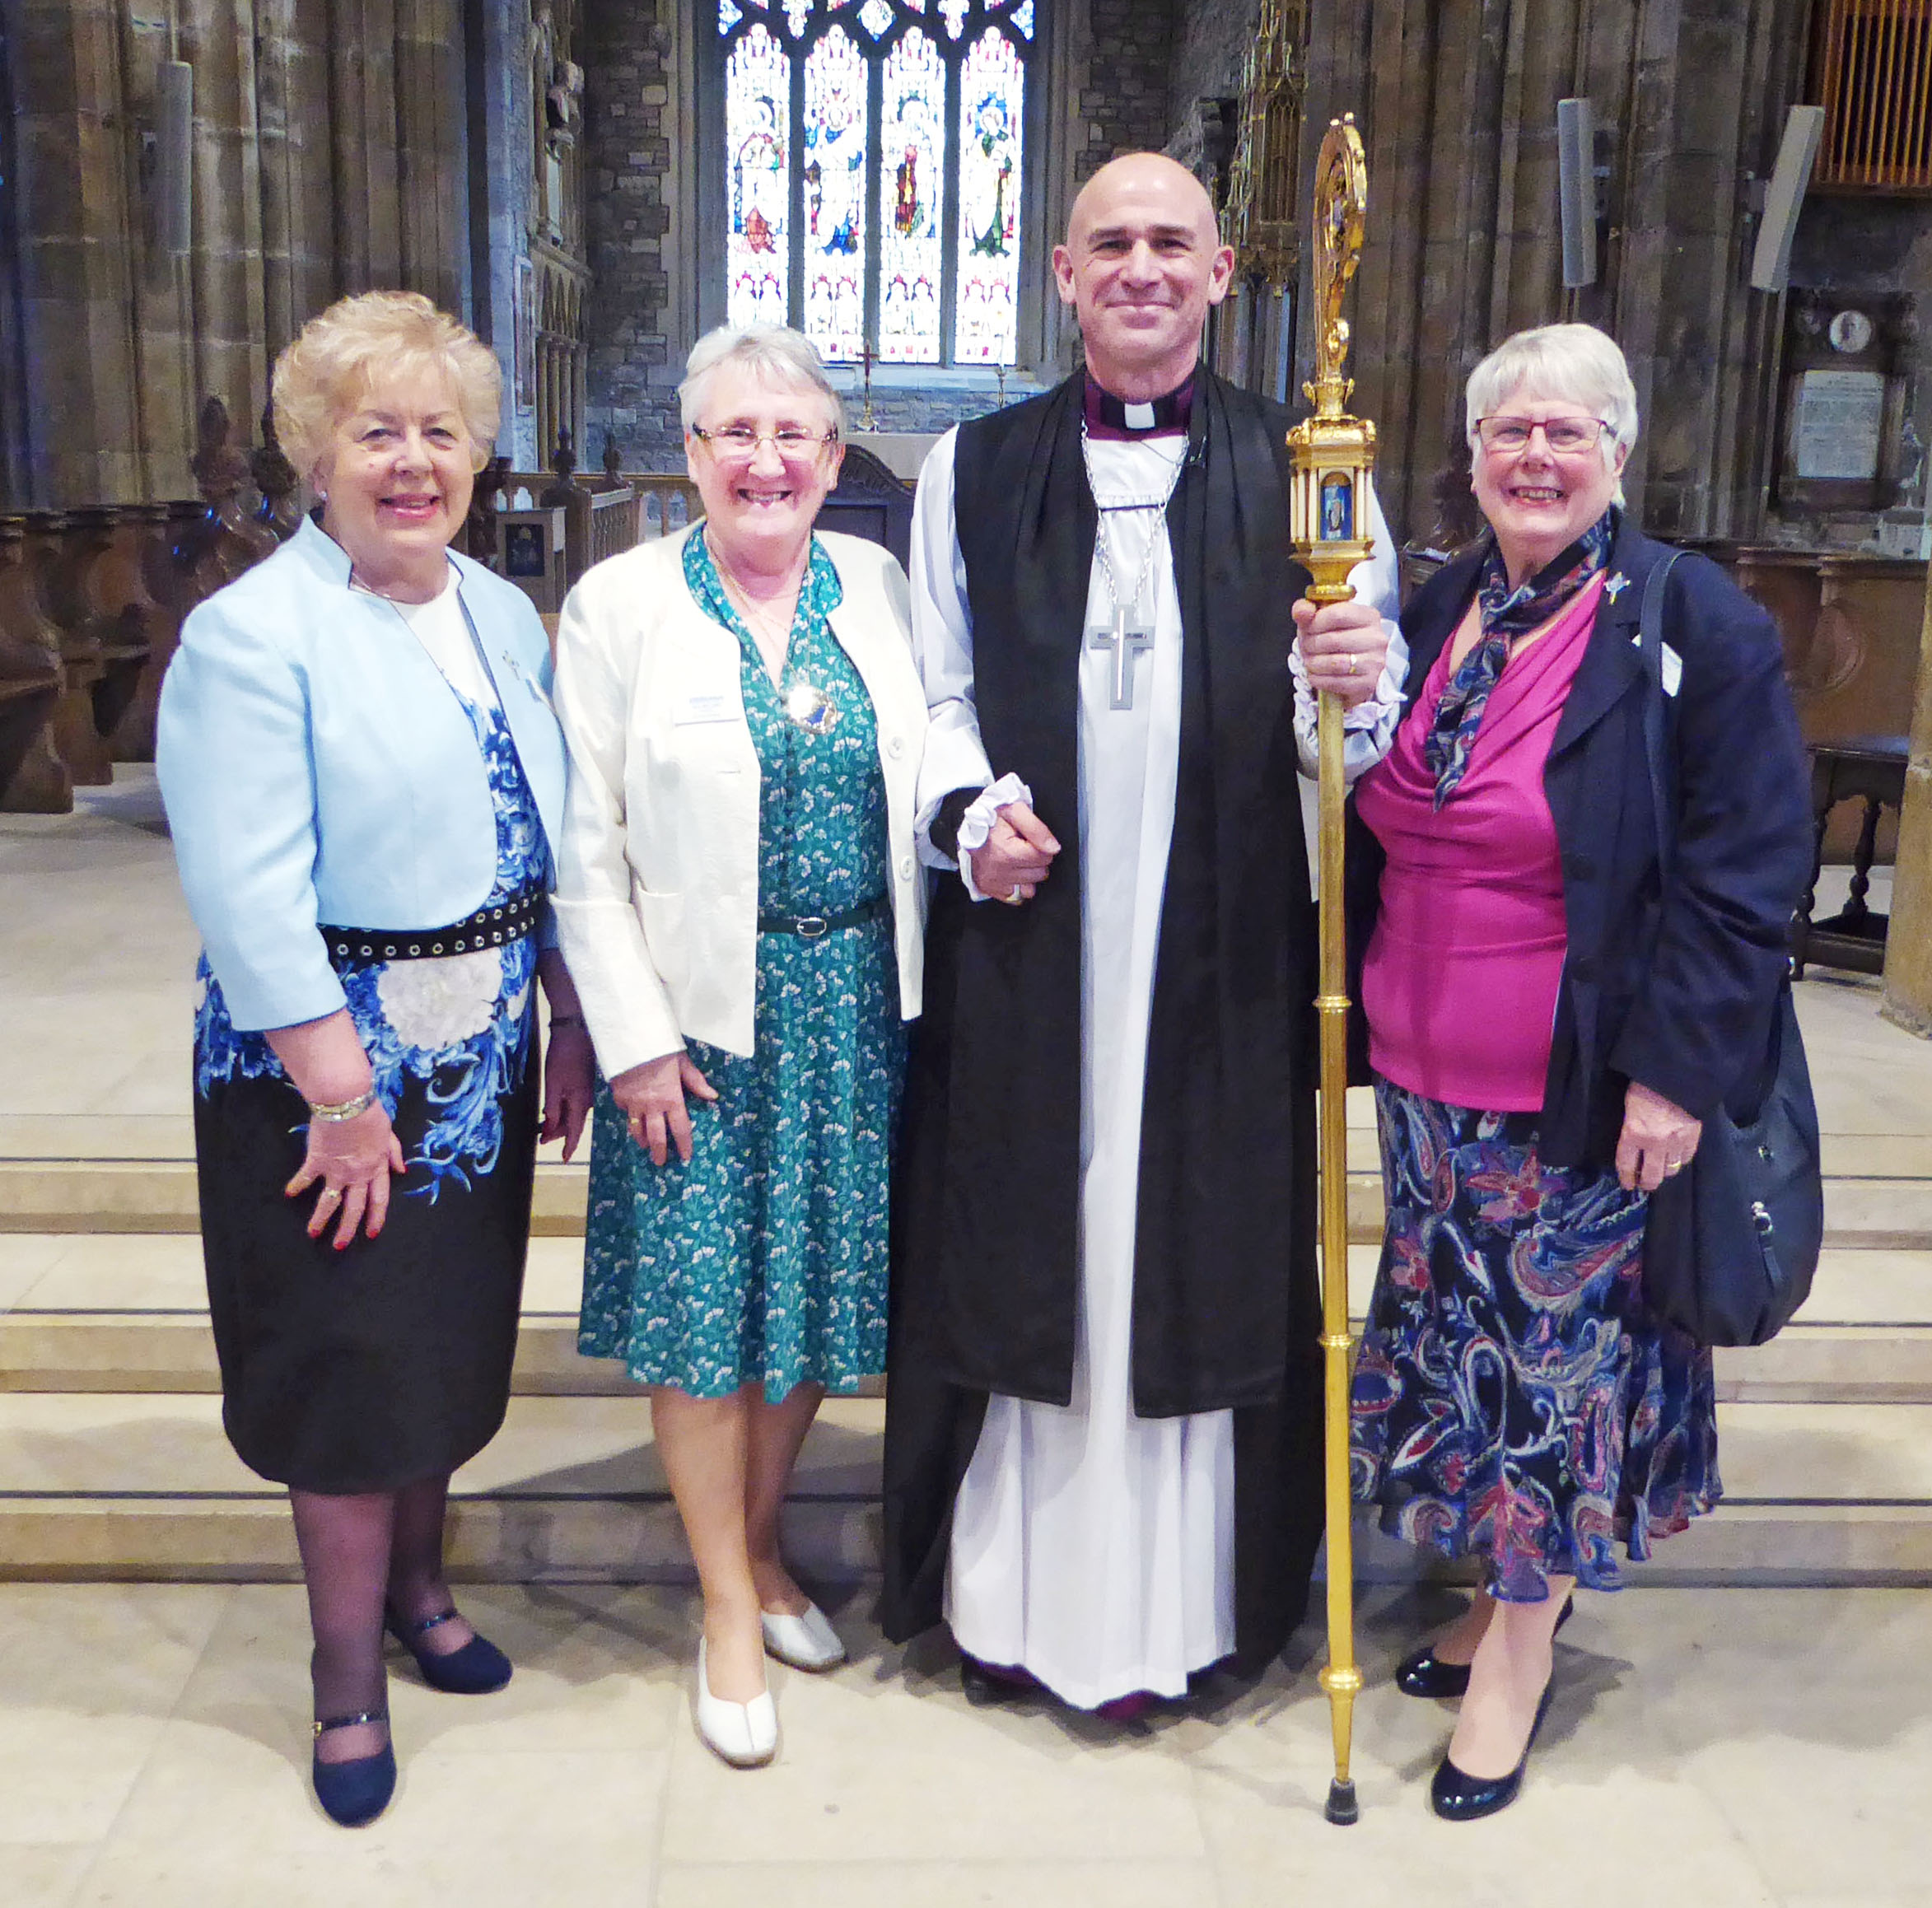 President, VIPs and Bishop Pete